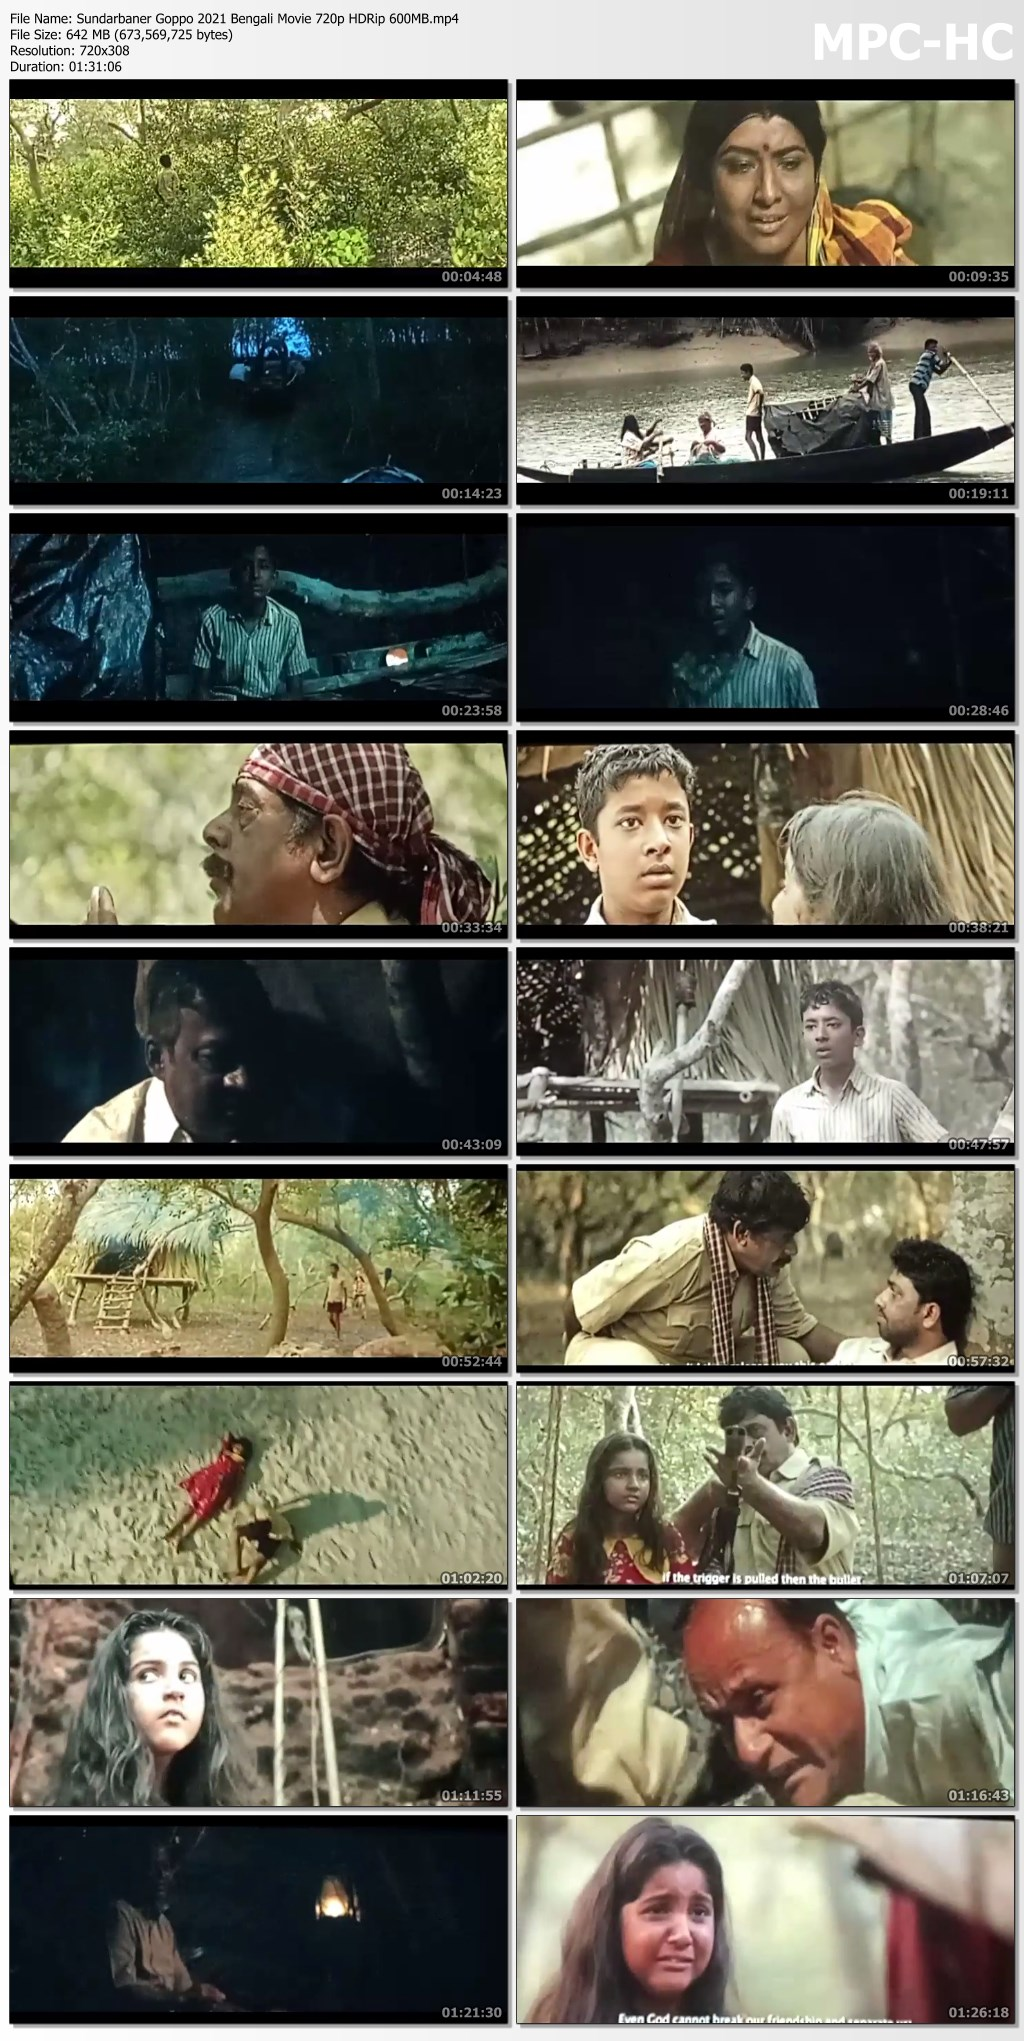 Sundarbaner Goppo 2021 Bengali Movie 720p HDRip 600MB.mp4 thumbs